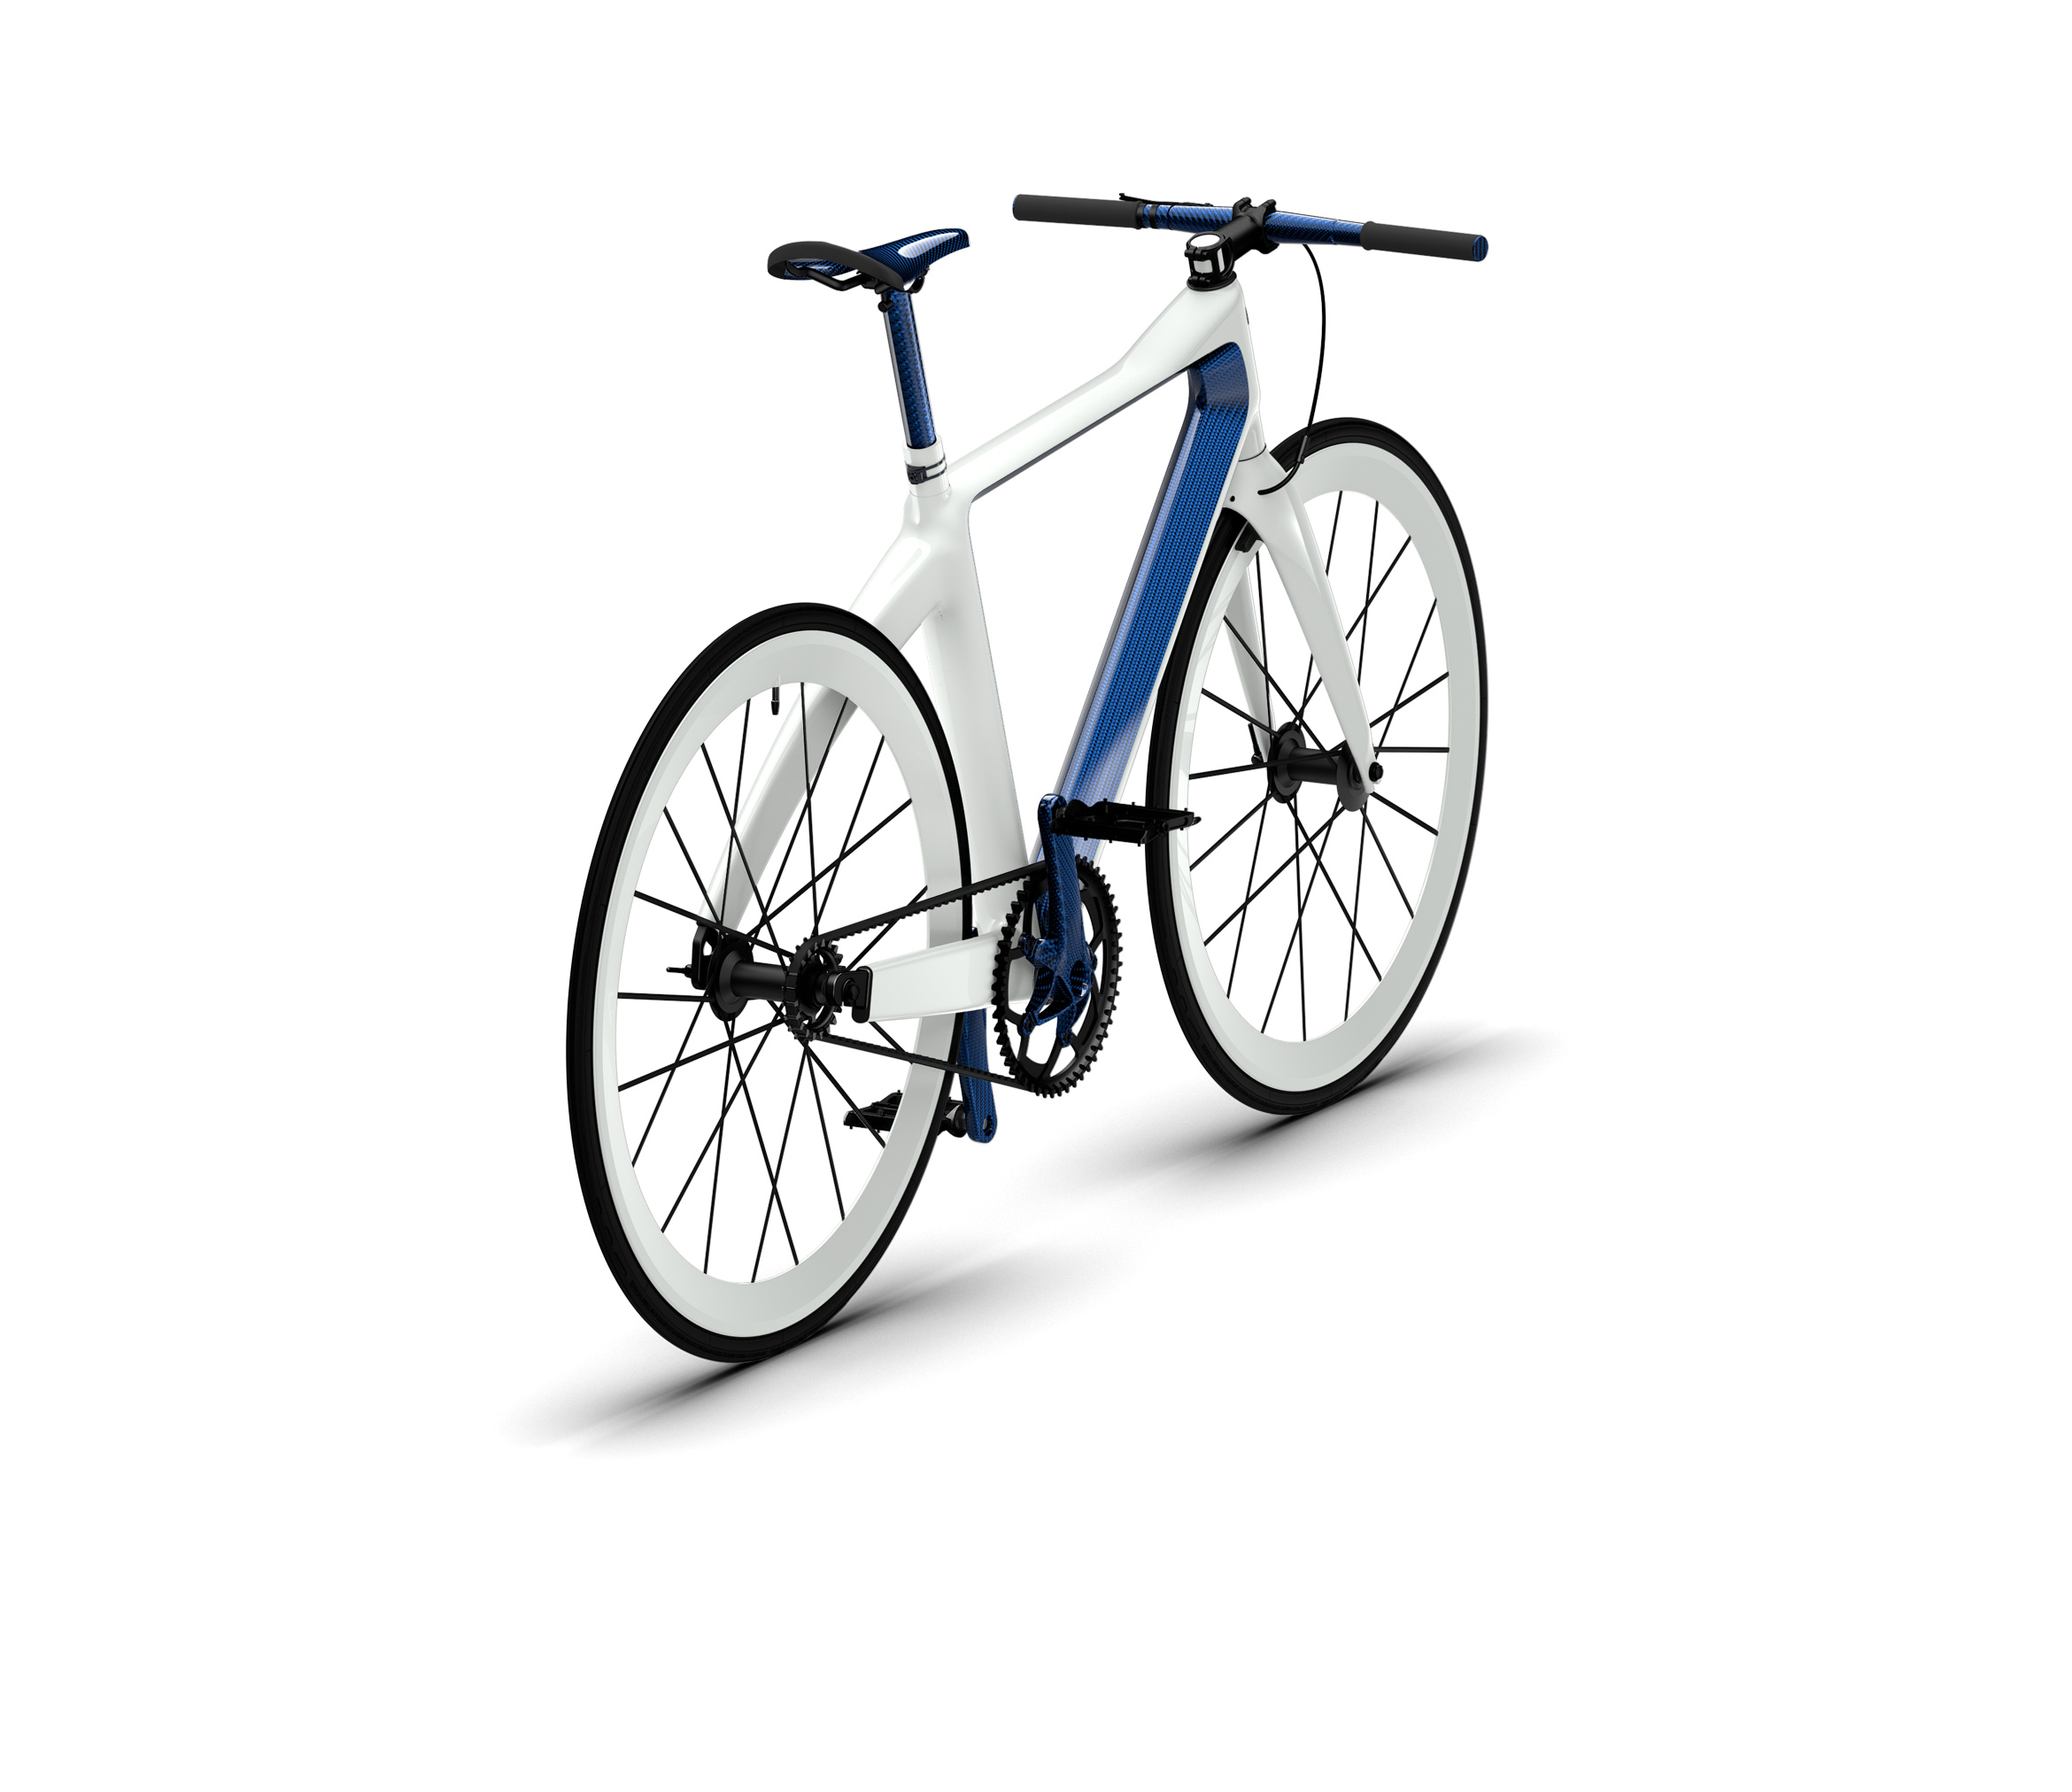 PG Bugatti bicycle (20)